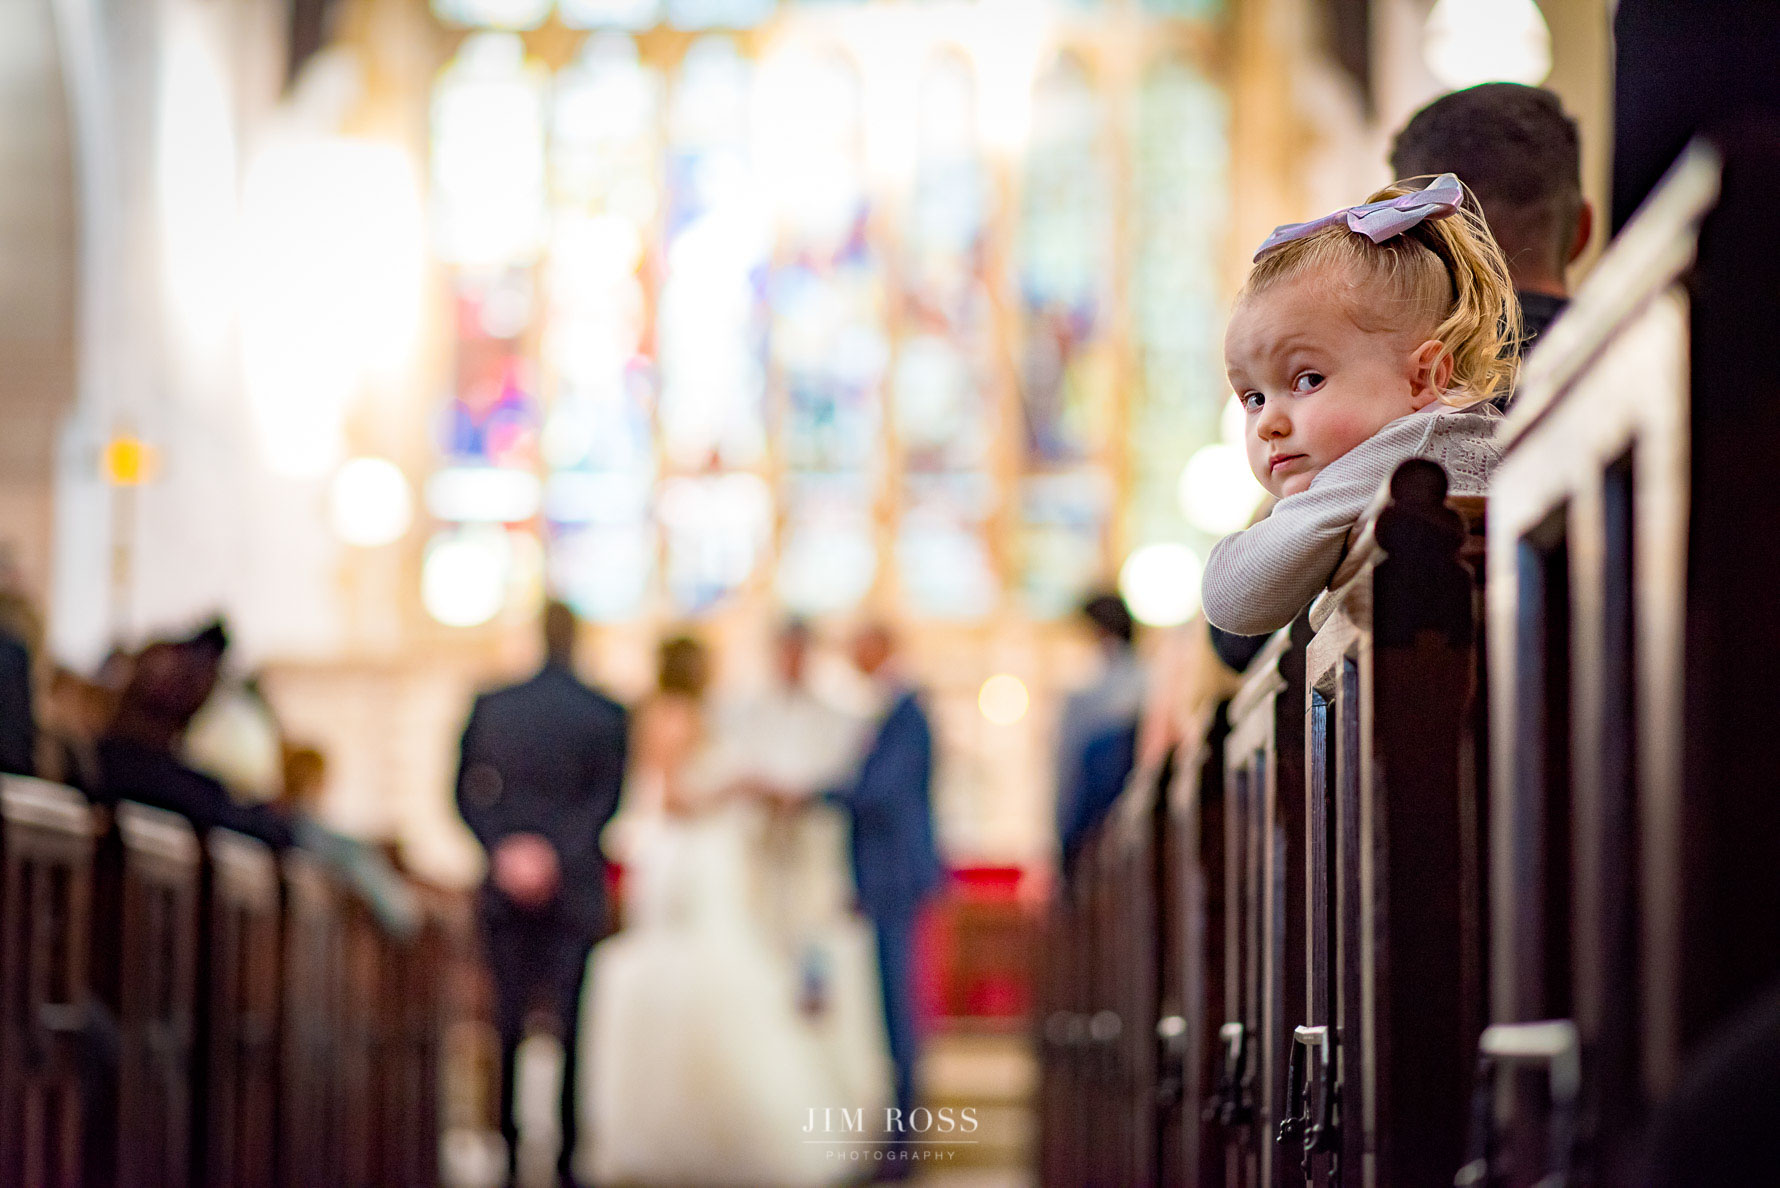 Wedding guest child looking the wrong way